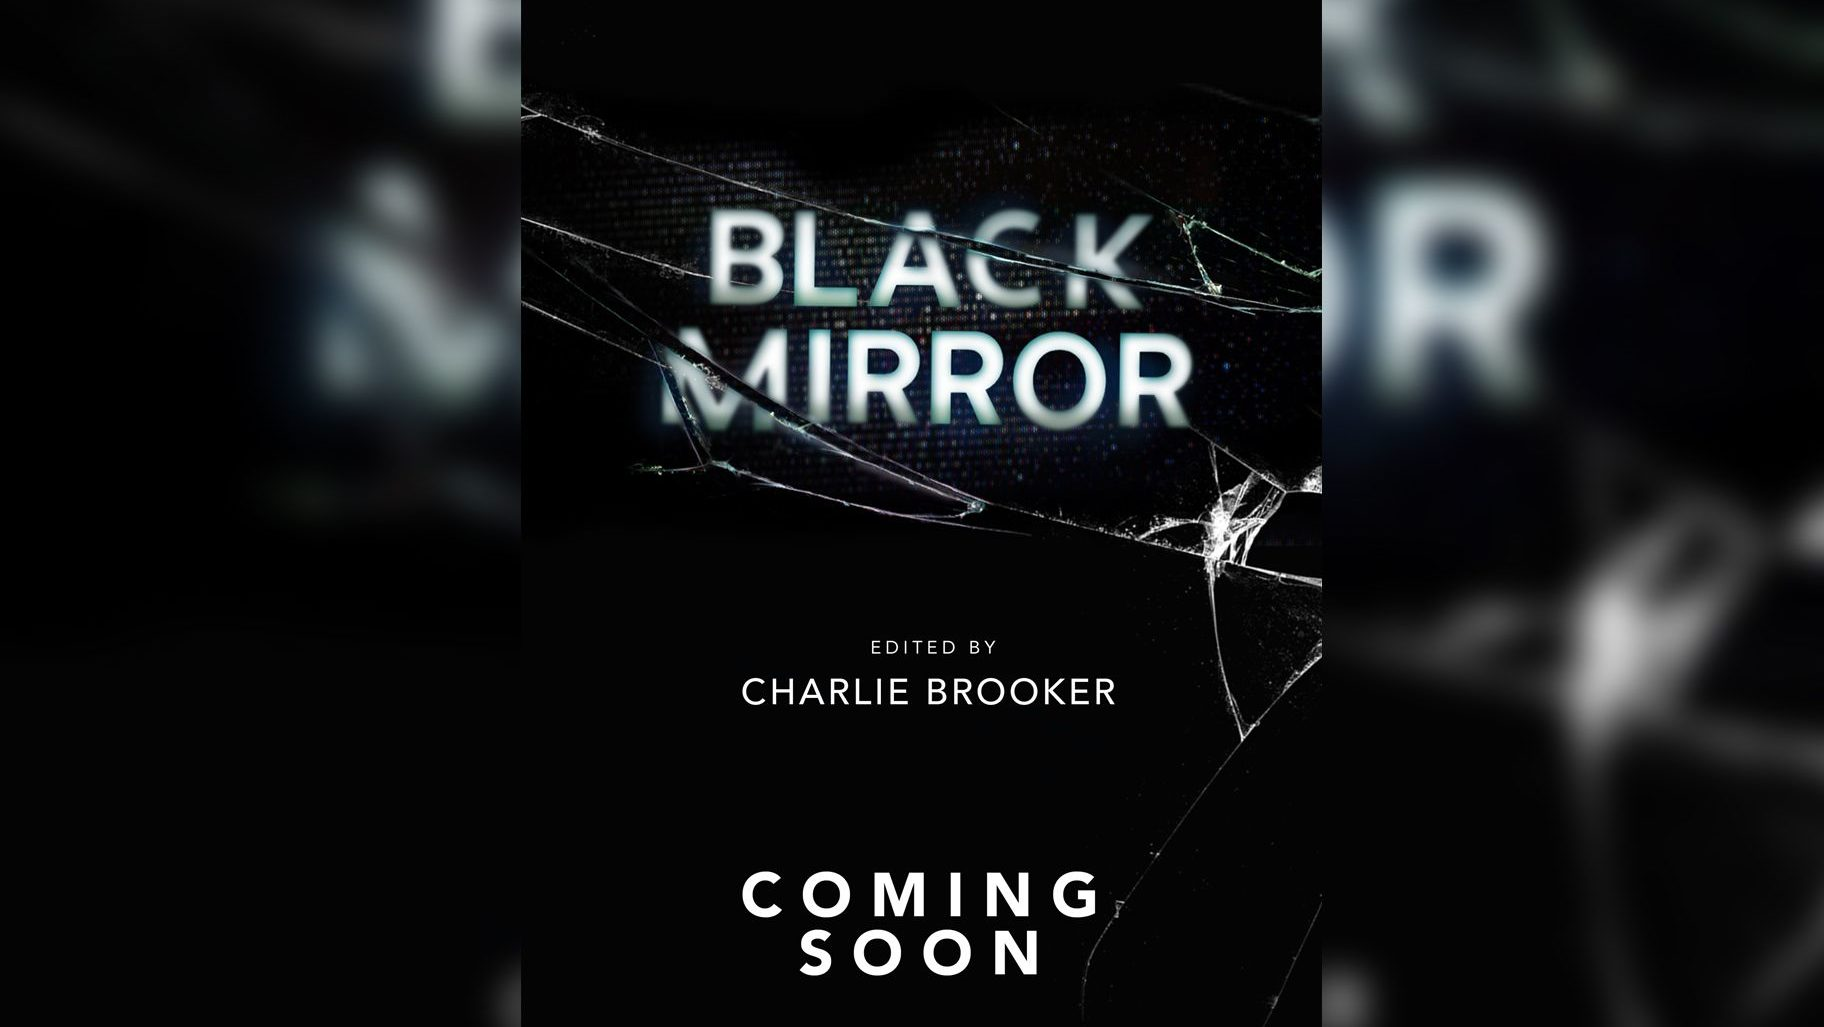 Black Mirror season 6 release date